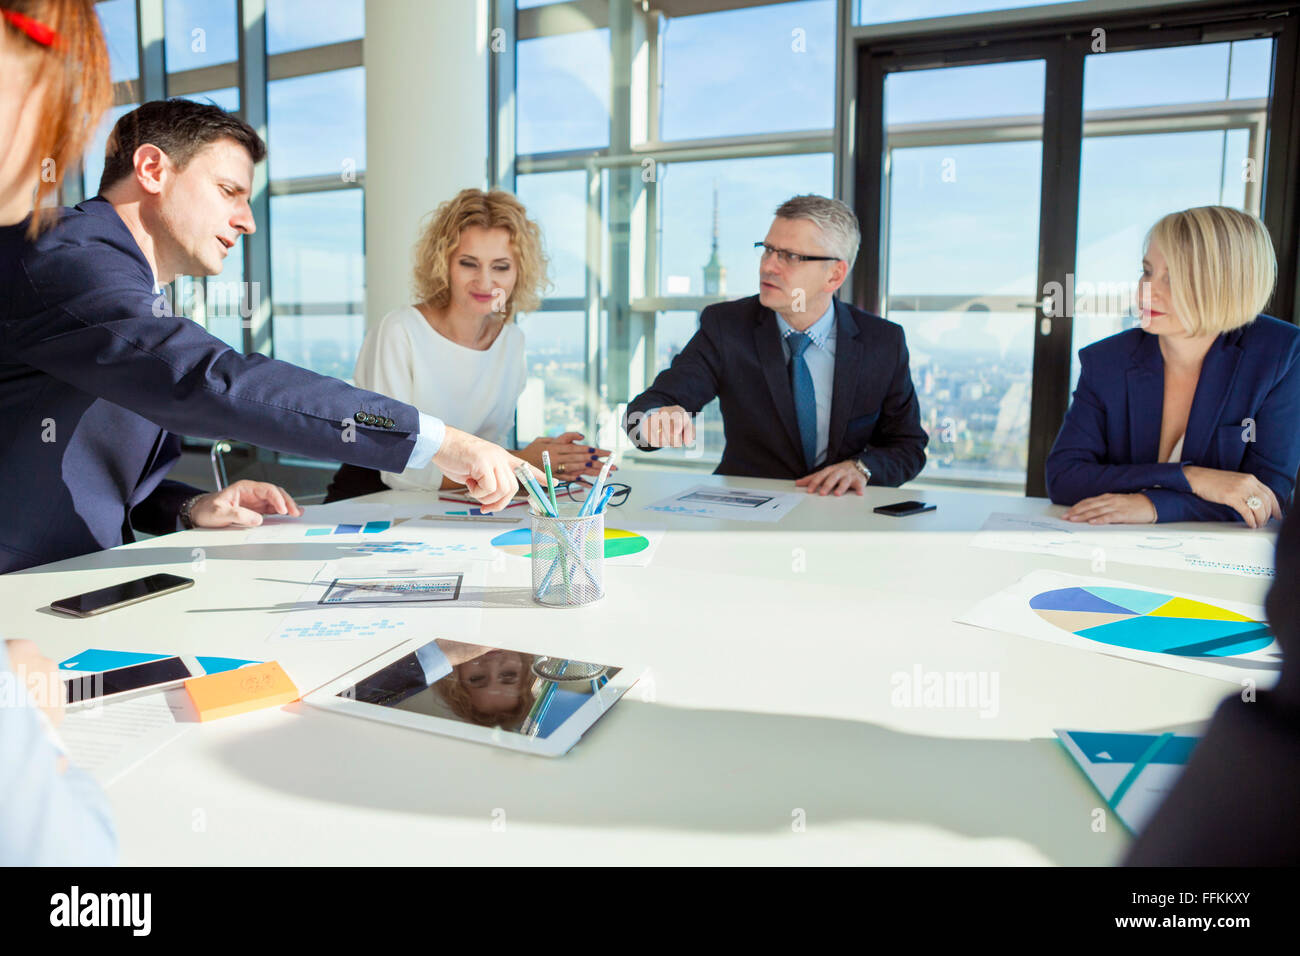 Team of architects in business meeting - Stock Image